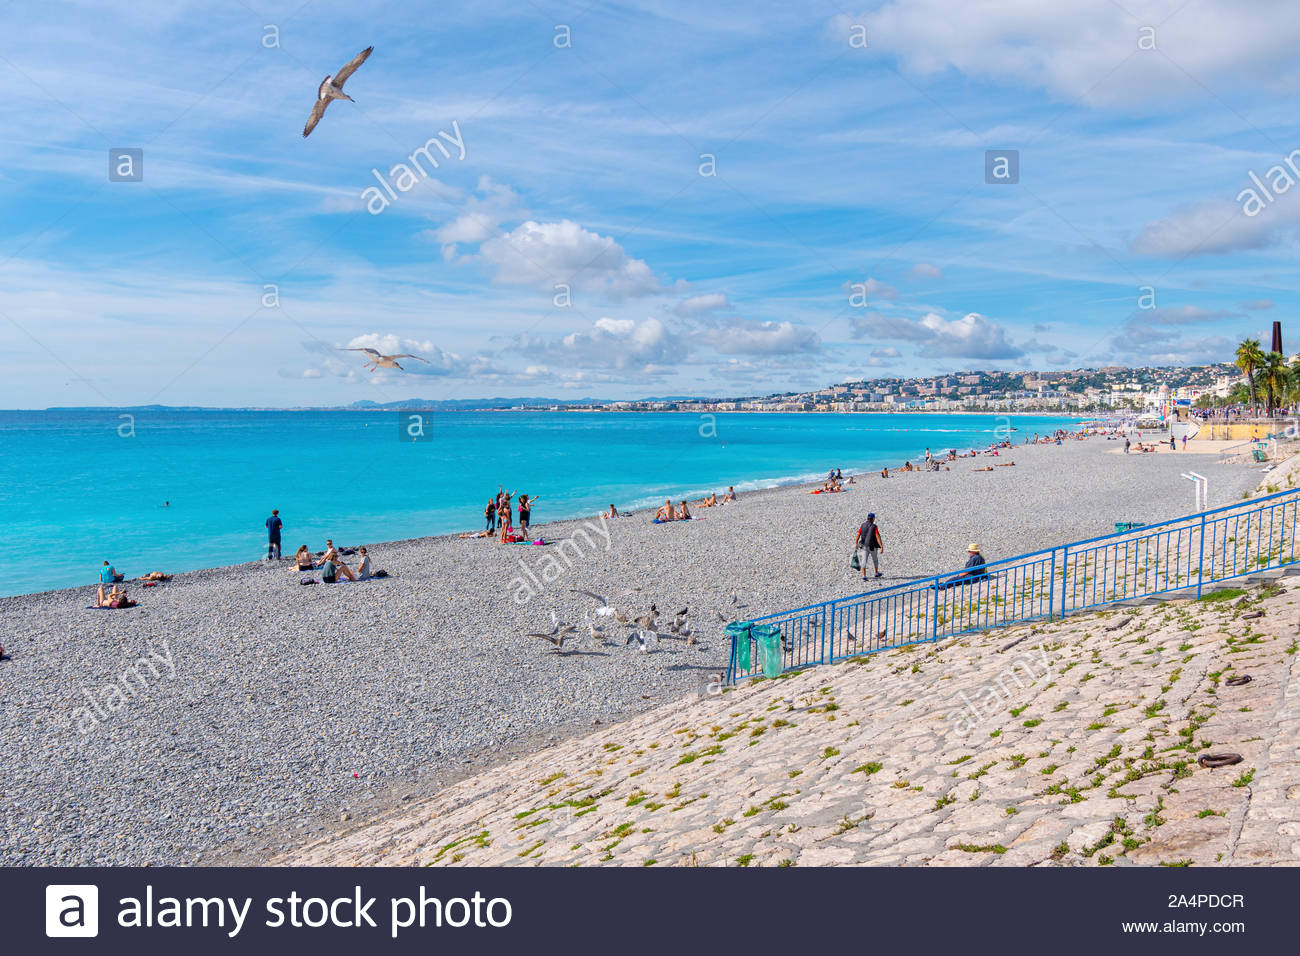 A seagull flies about tourists on the public beach on the French Riviera of the Mediterranean Sea in Nice France. Stock Photo